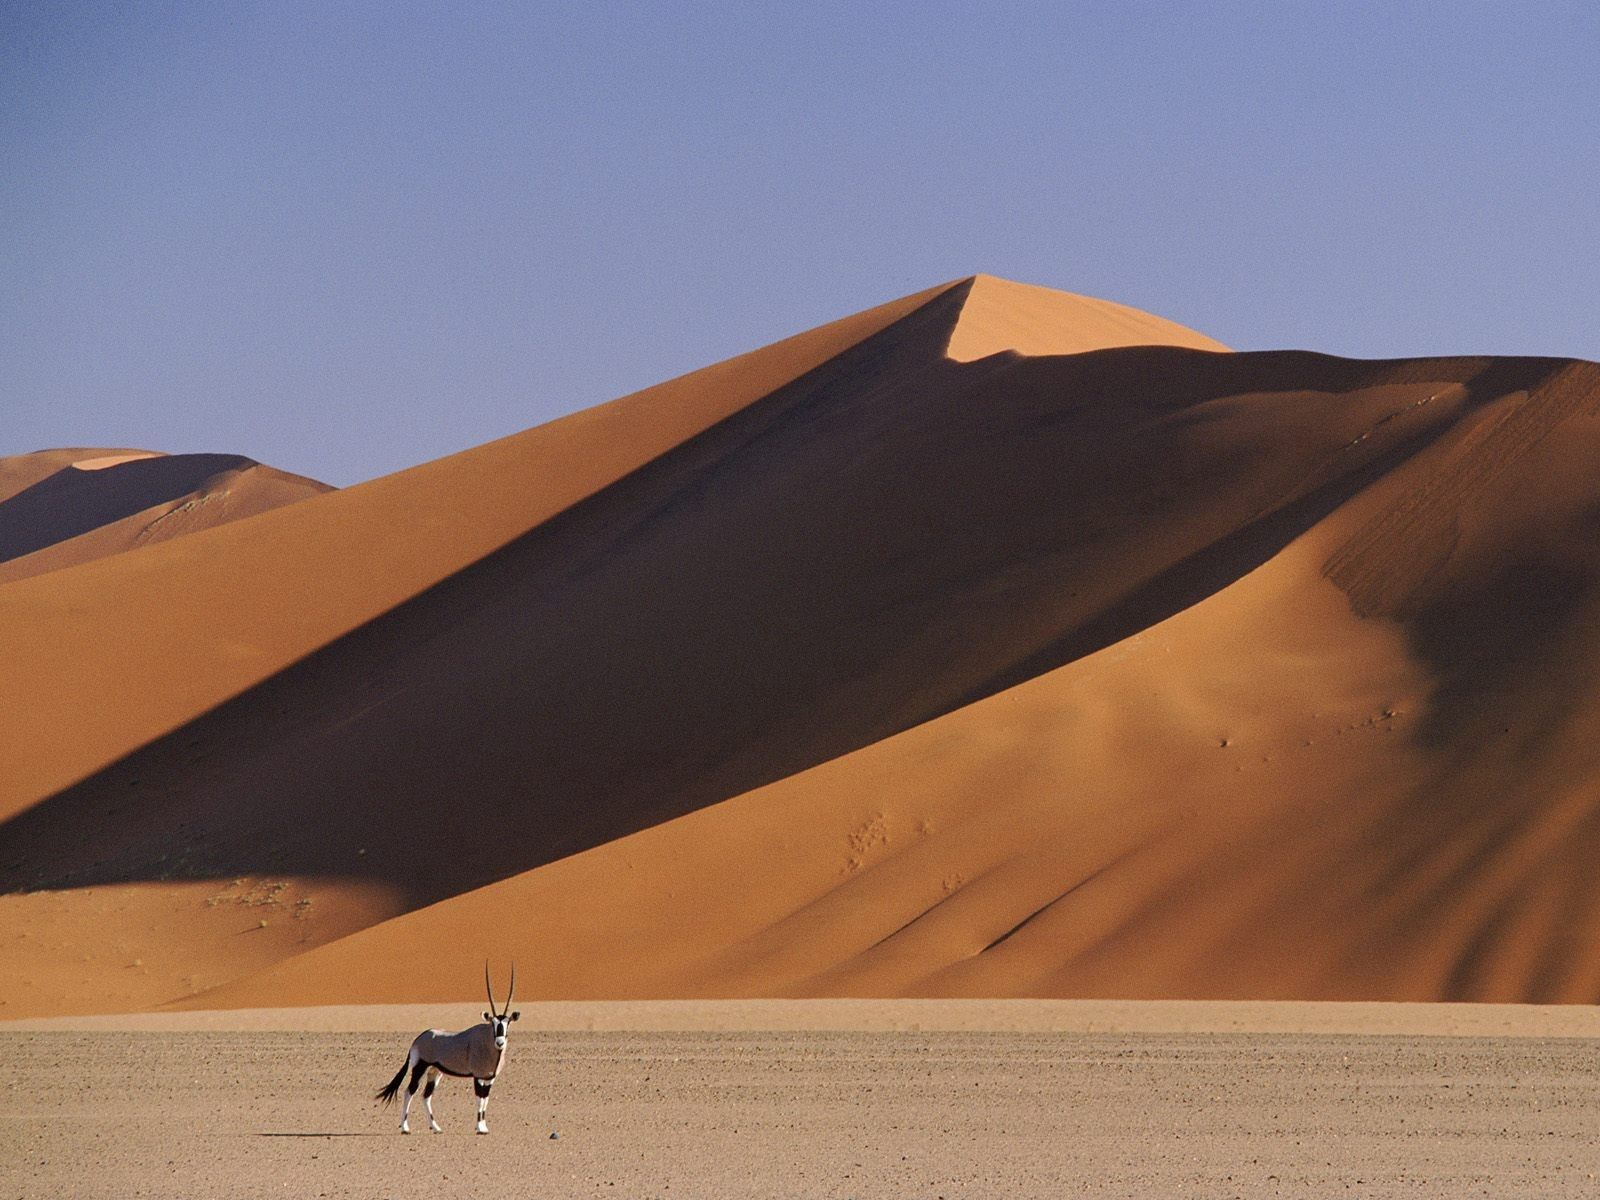 131763 download wallpaper Nature, Dunes, Links, Sand, Animal, Horns, Artiodactyls, Hoofed, Desert screensavers and pictures for free